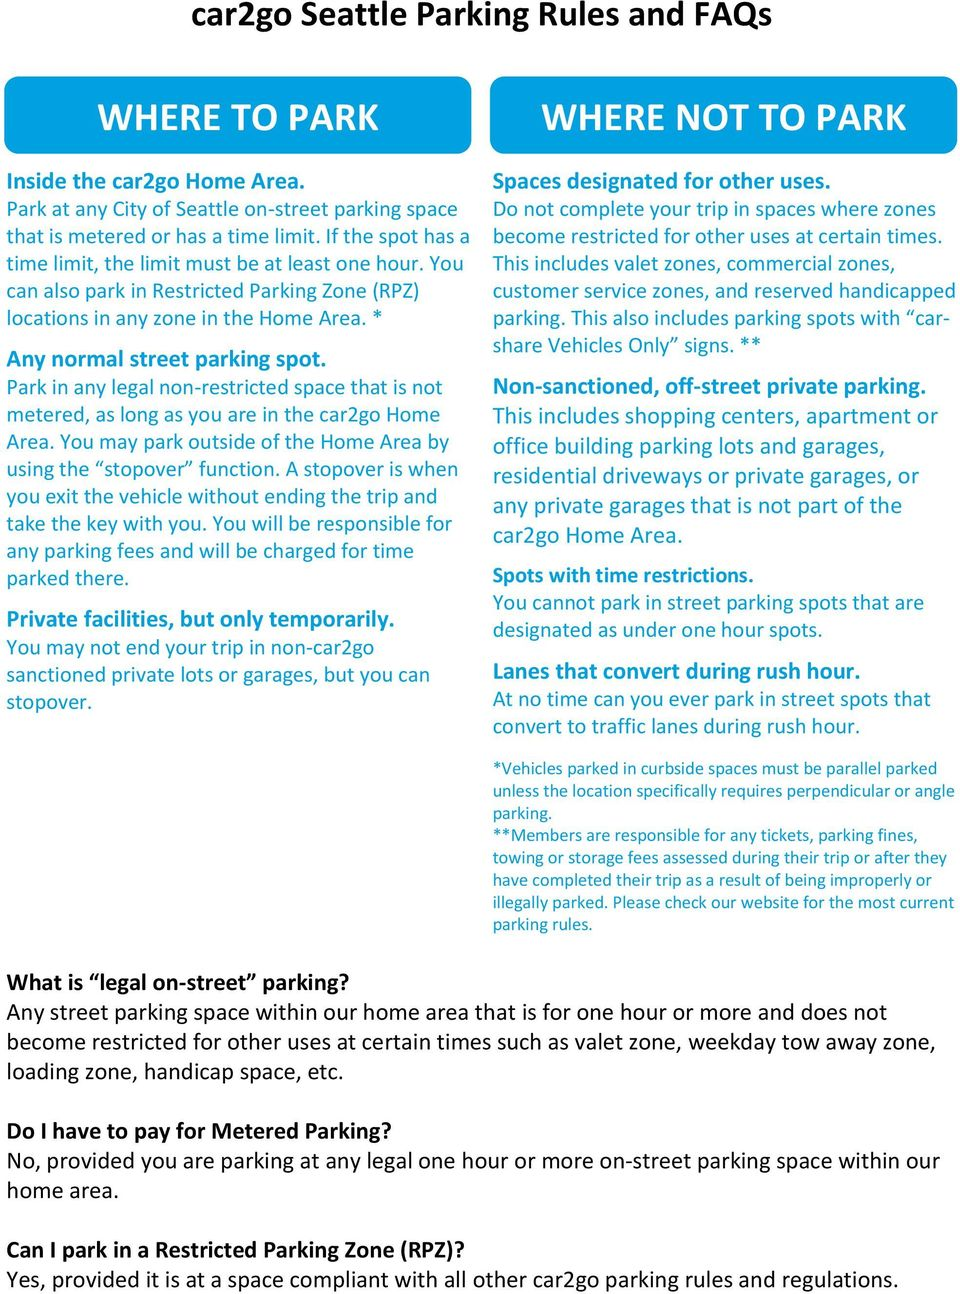 Car2go Seattle Parking Rules And Faqs Pdf